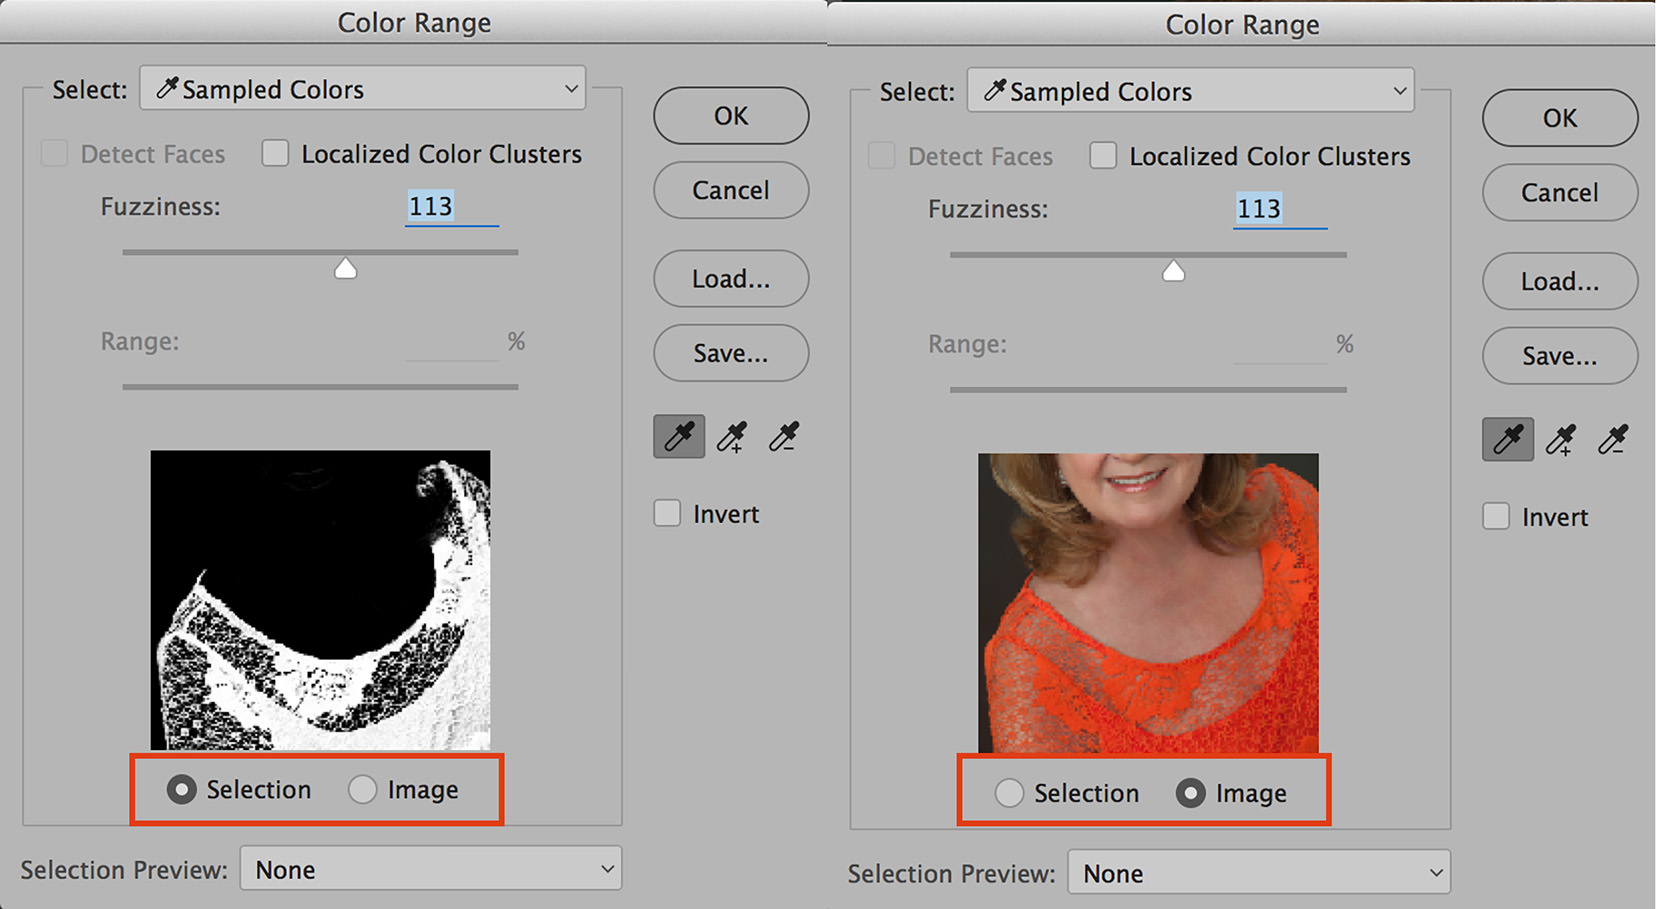 color range in photoshop selection and image views